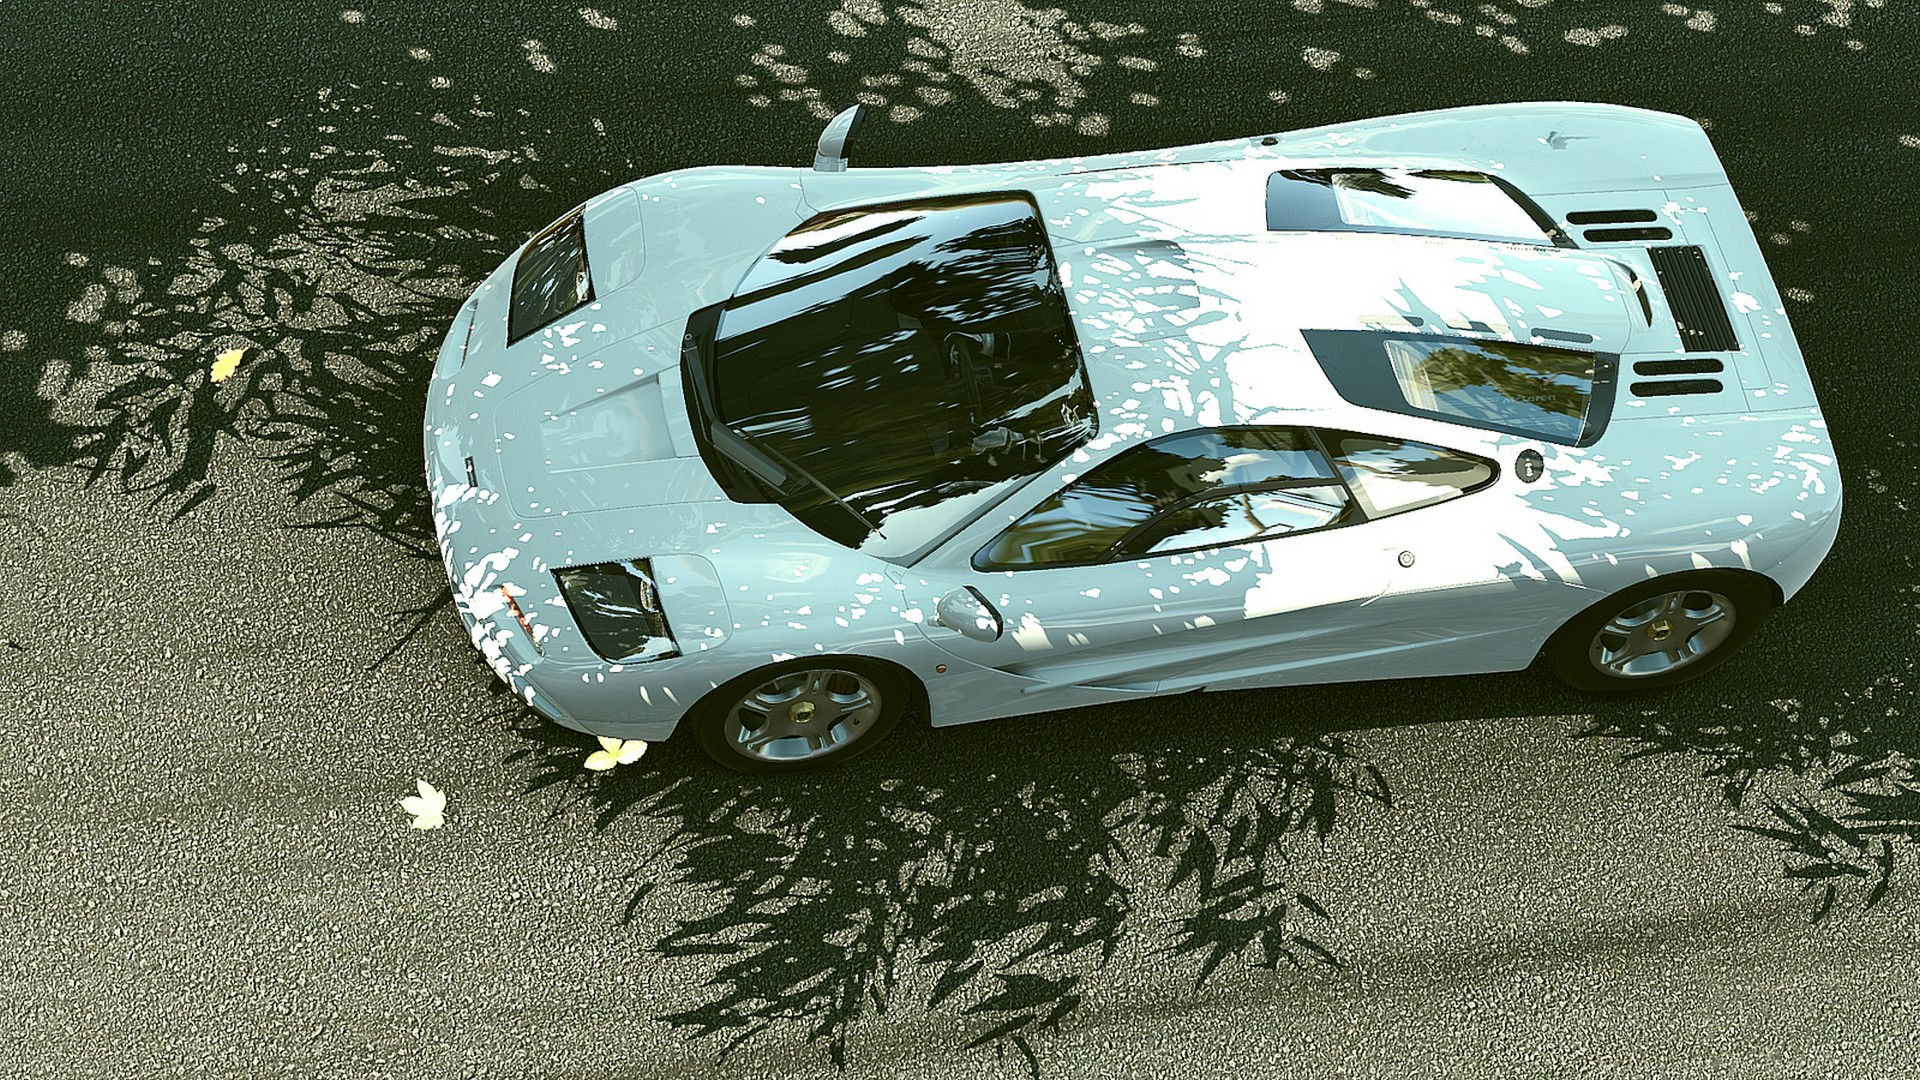 New Project Cars In-Game Screens Show What Next-Gen Graphics/Visuals ...